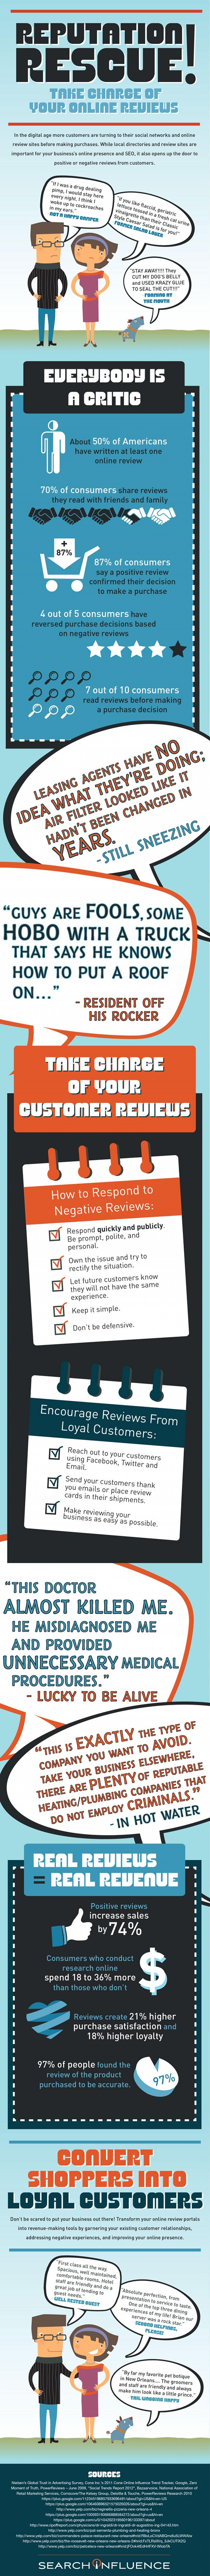 Infographic: Reputation Rescue: Dealing with Your Business's Online Reviews – SearchInfluence.com